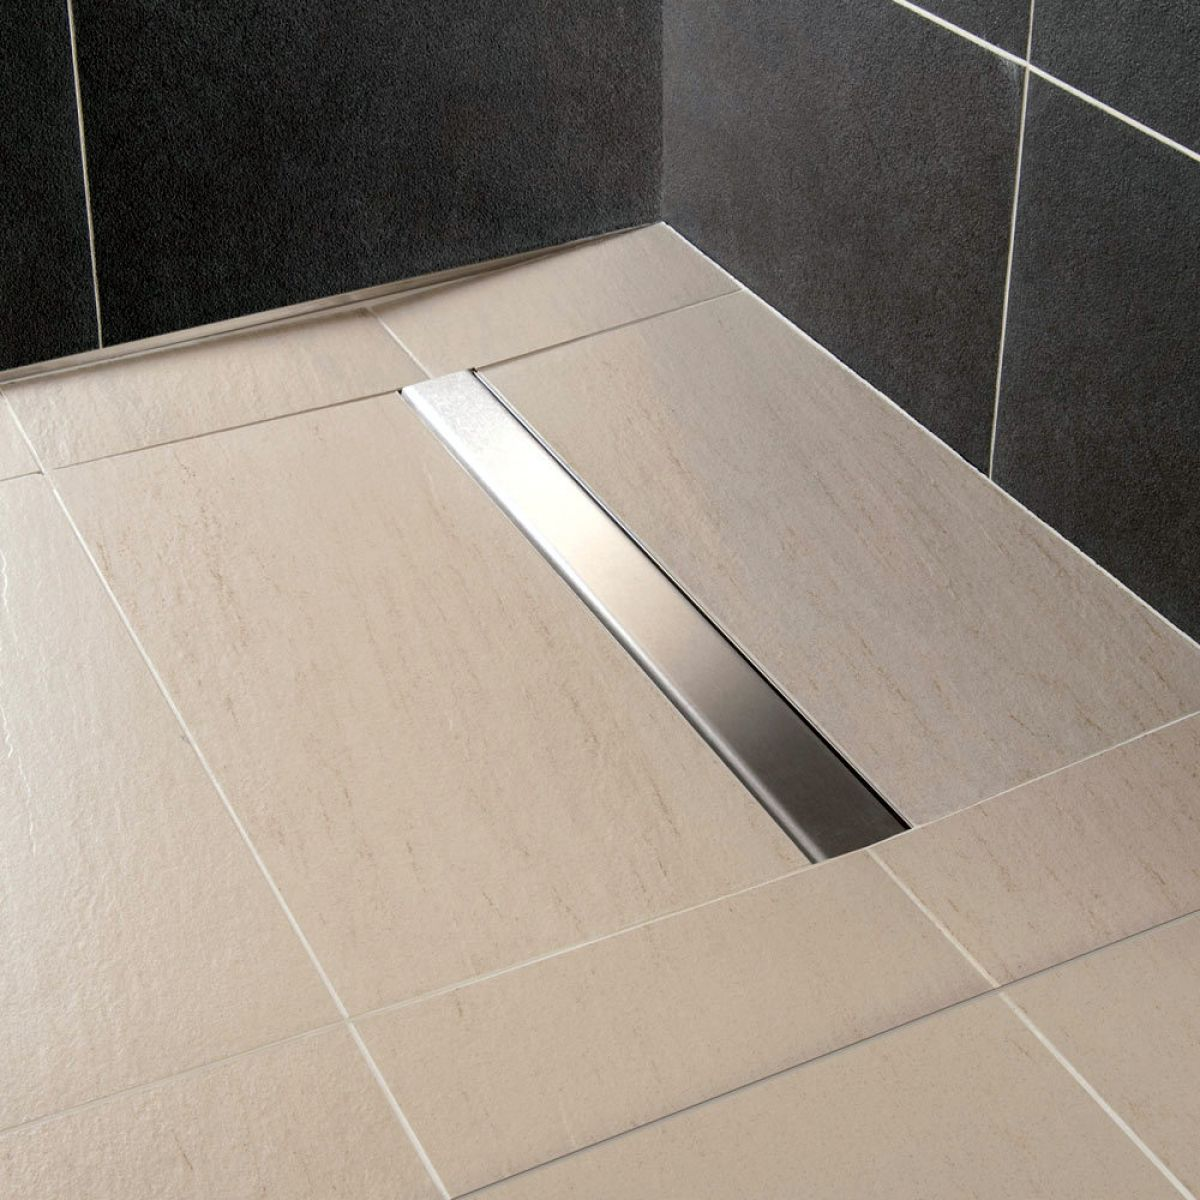 Impey Aqua Dec Linear 2 Wetroom Flooring Uk Bathrooms